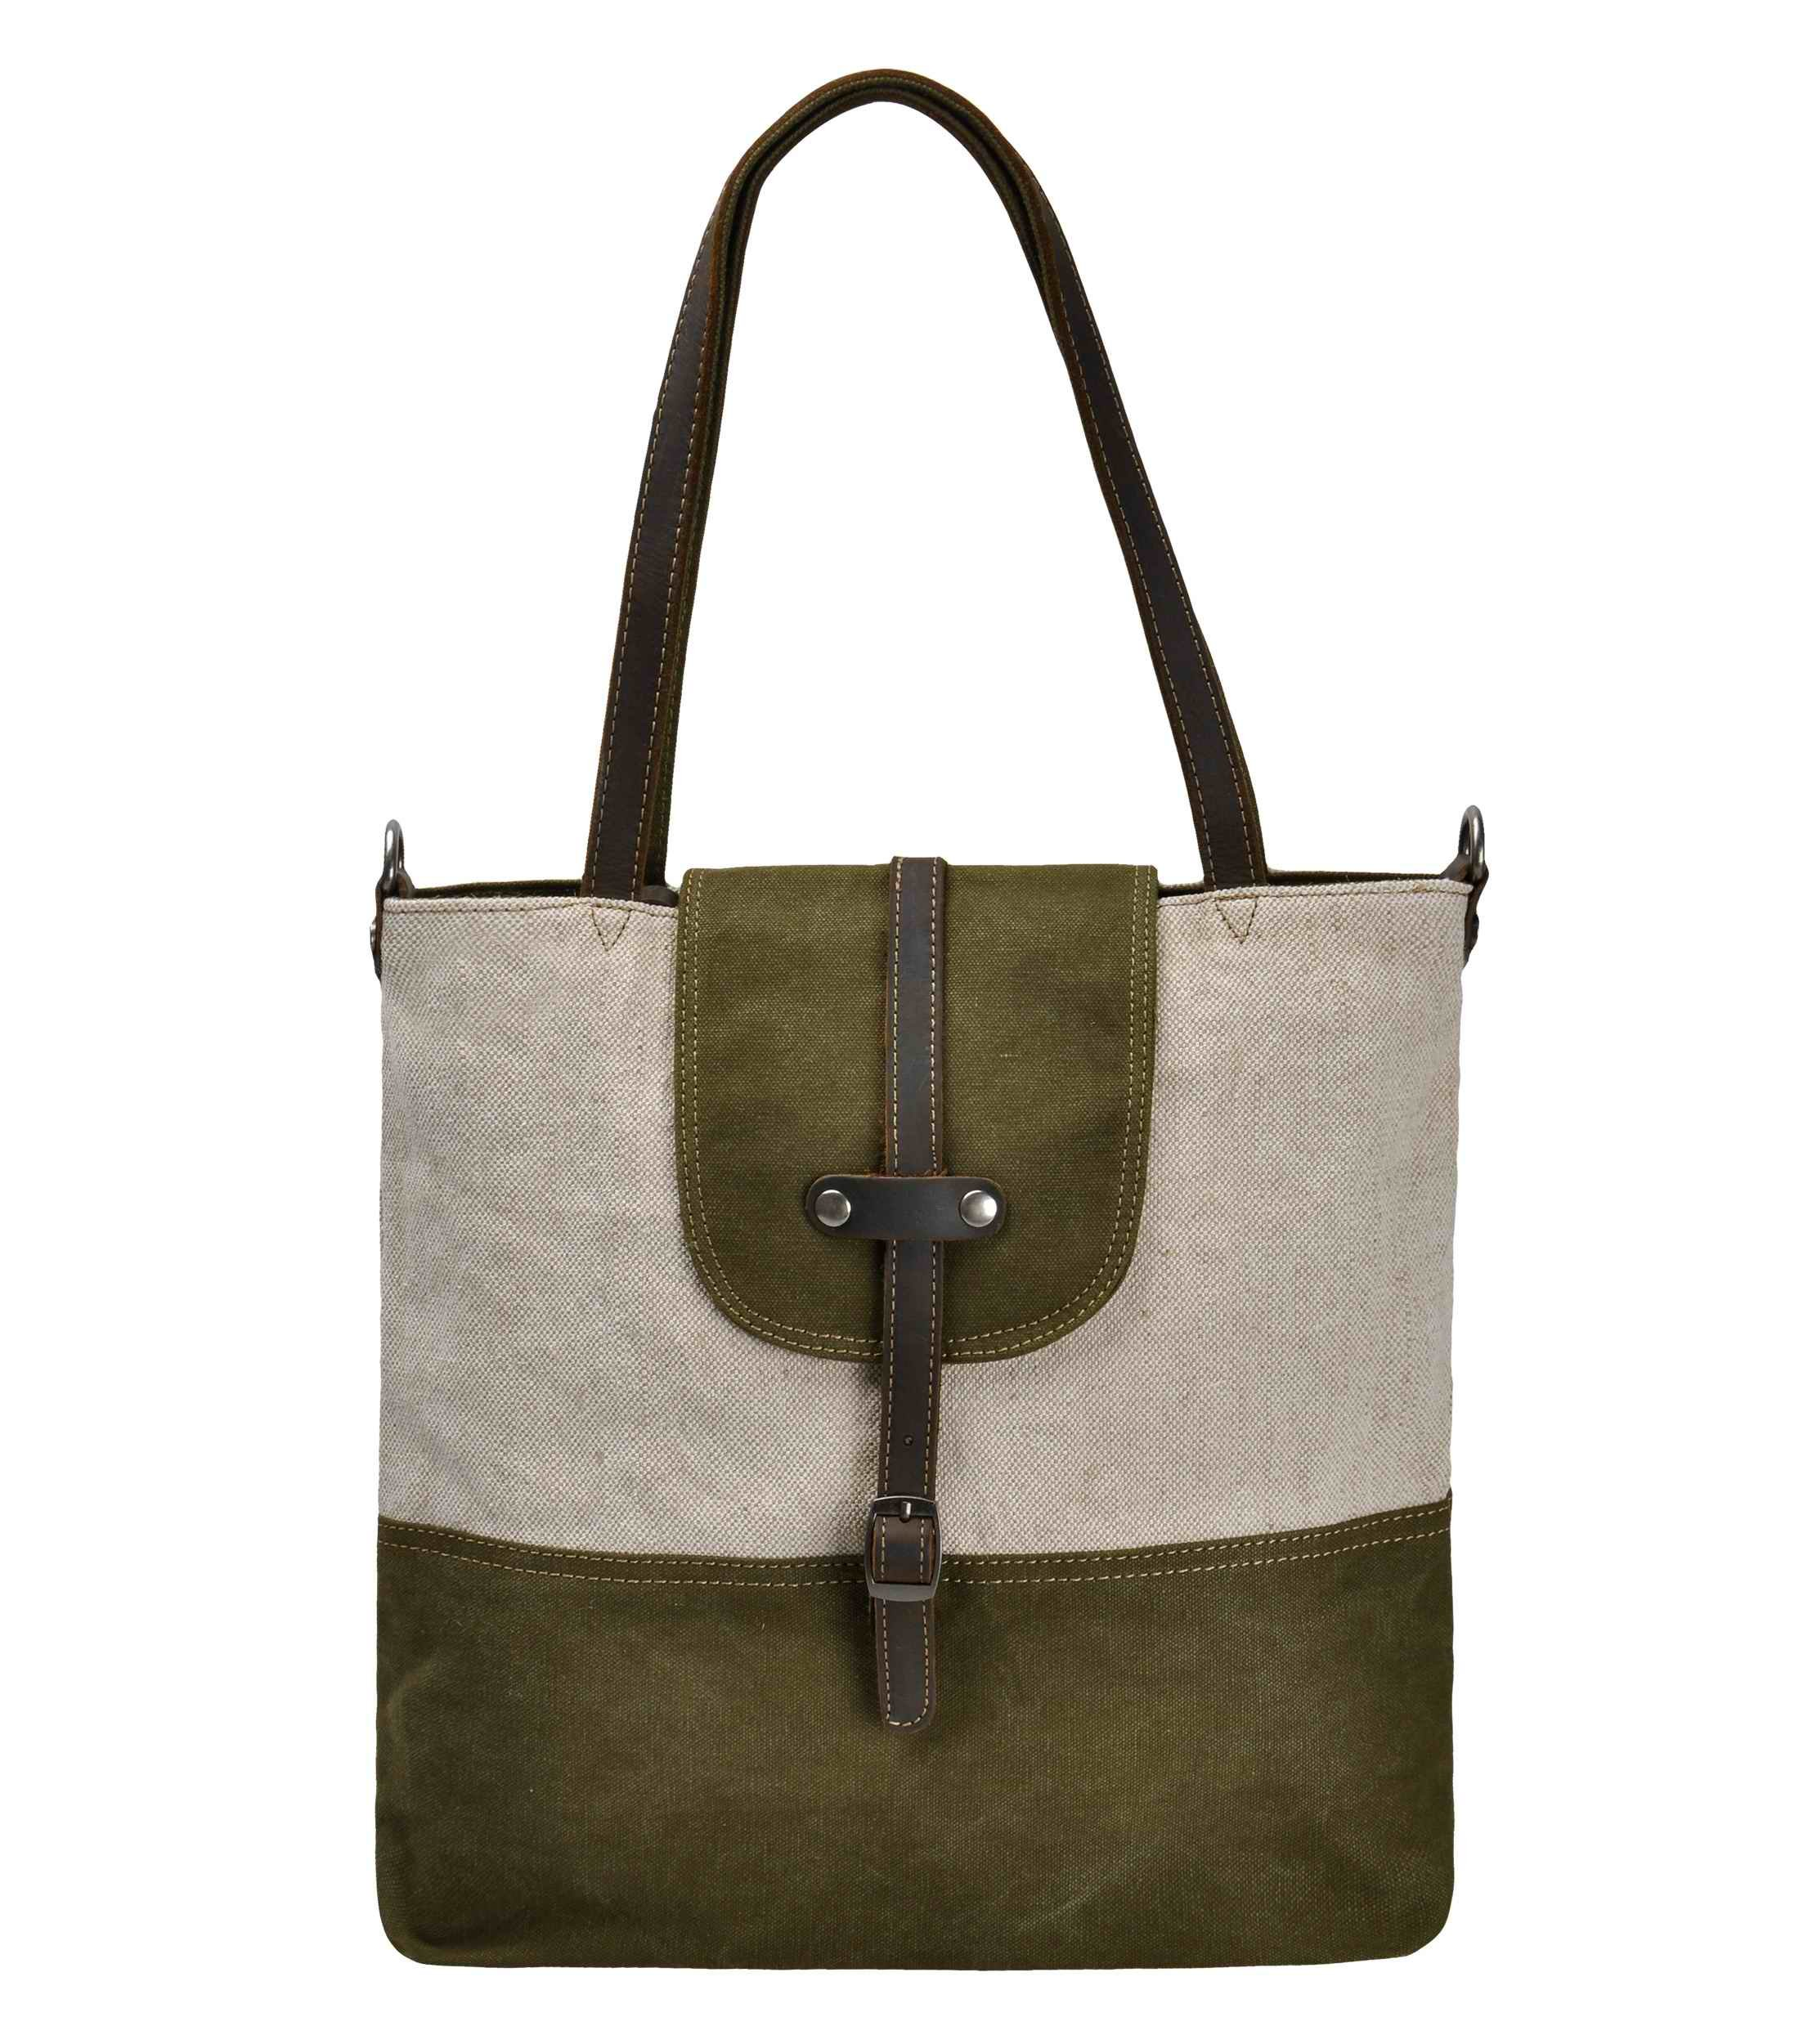 Canvas Tote Bag, ZLYC 2 Ways Use Shoulder Bag Vintage Handbag Leather Trim Casual Shopper Purse